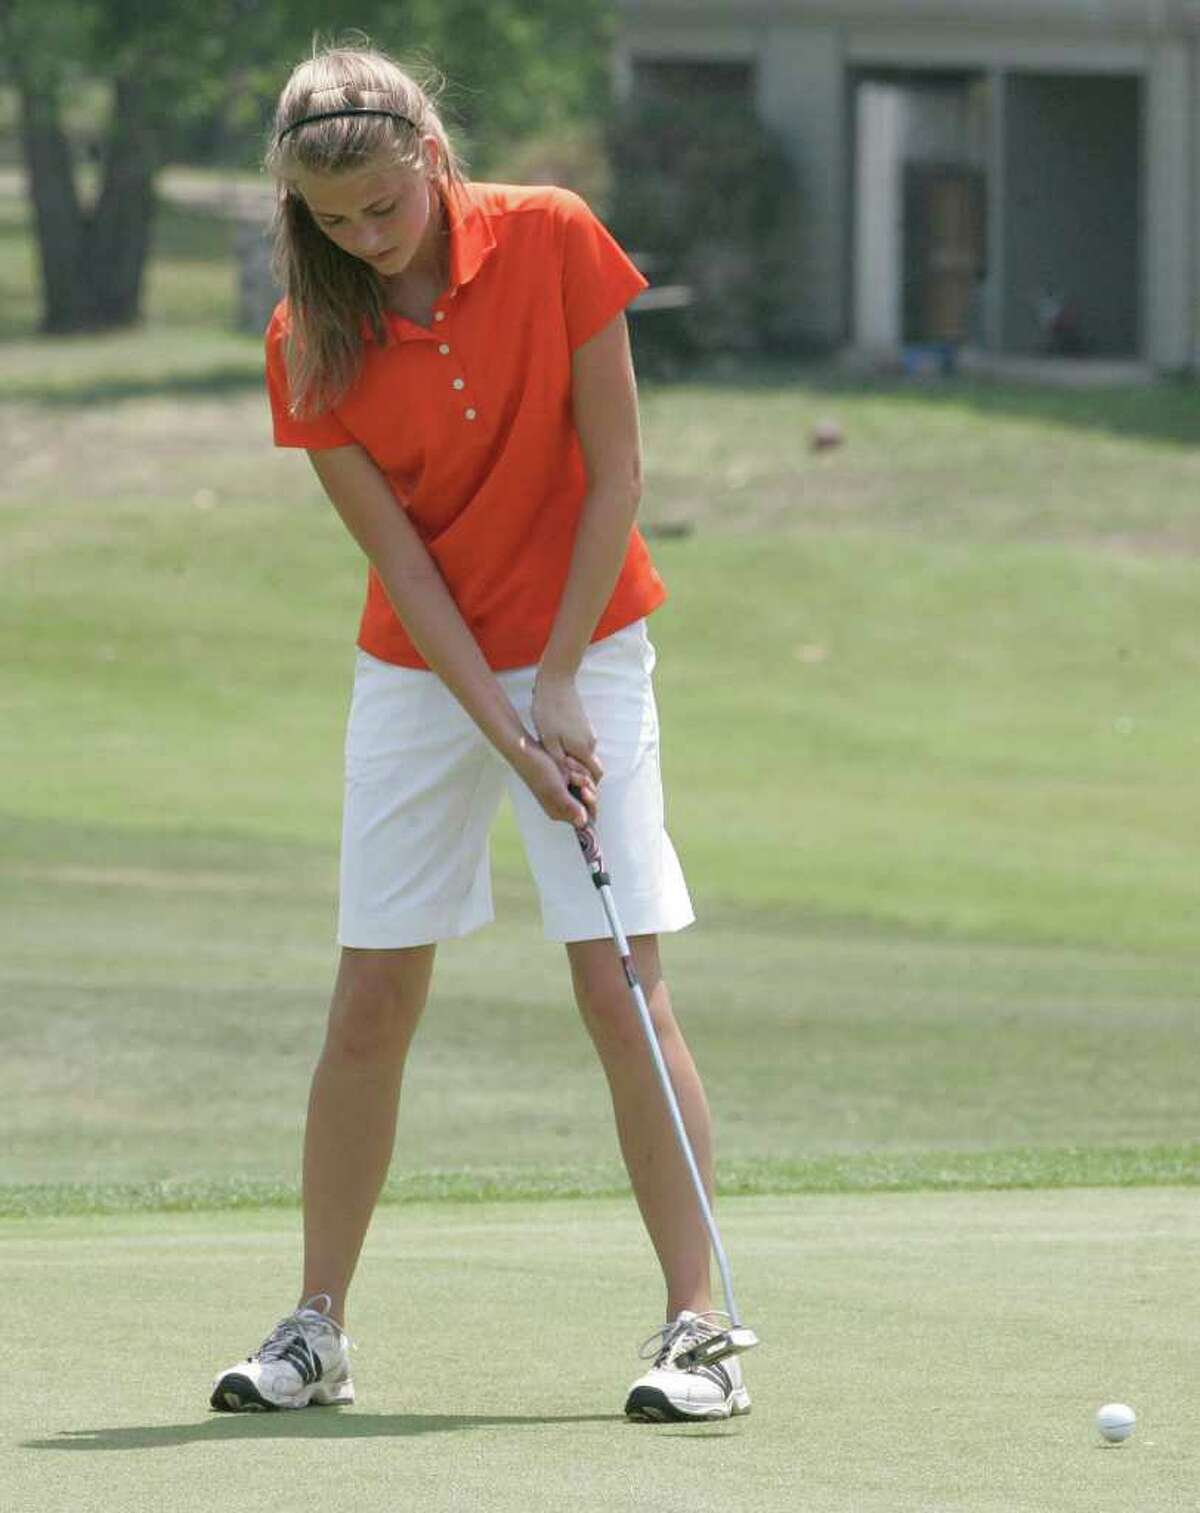 Medina Valley's Caitlyn Keller putts on the ninth hole Monday, April 18, 2011, in the first round of the Region IV-4A girls' golf tournament at Pecan Valley Golf Course.